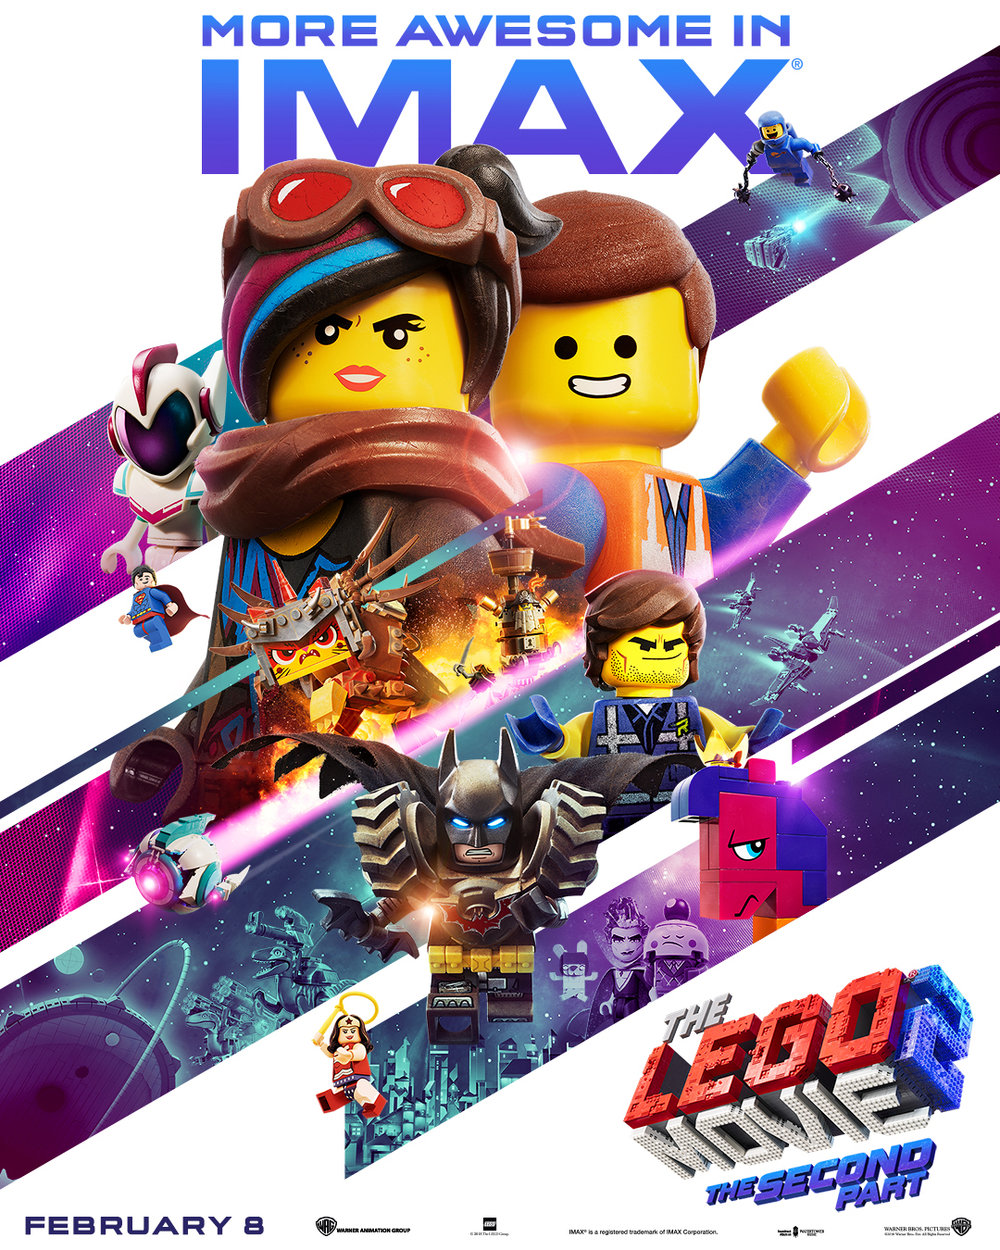 the-lego-movie-2-imax-poster.jpg